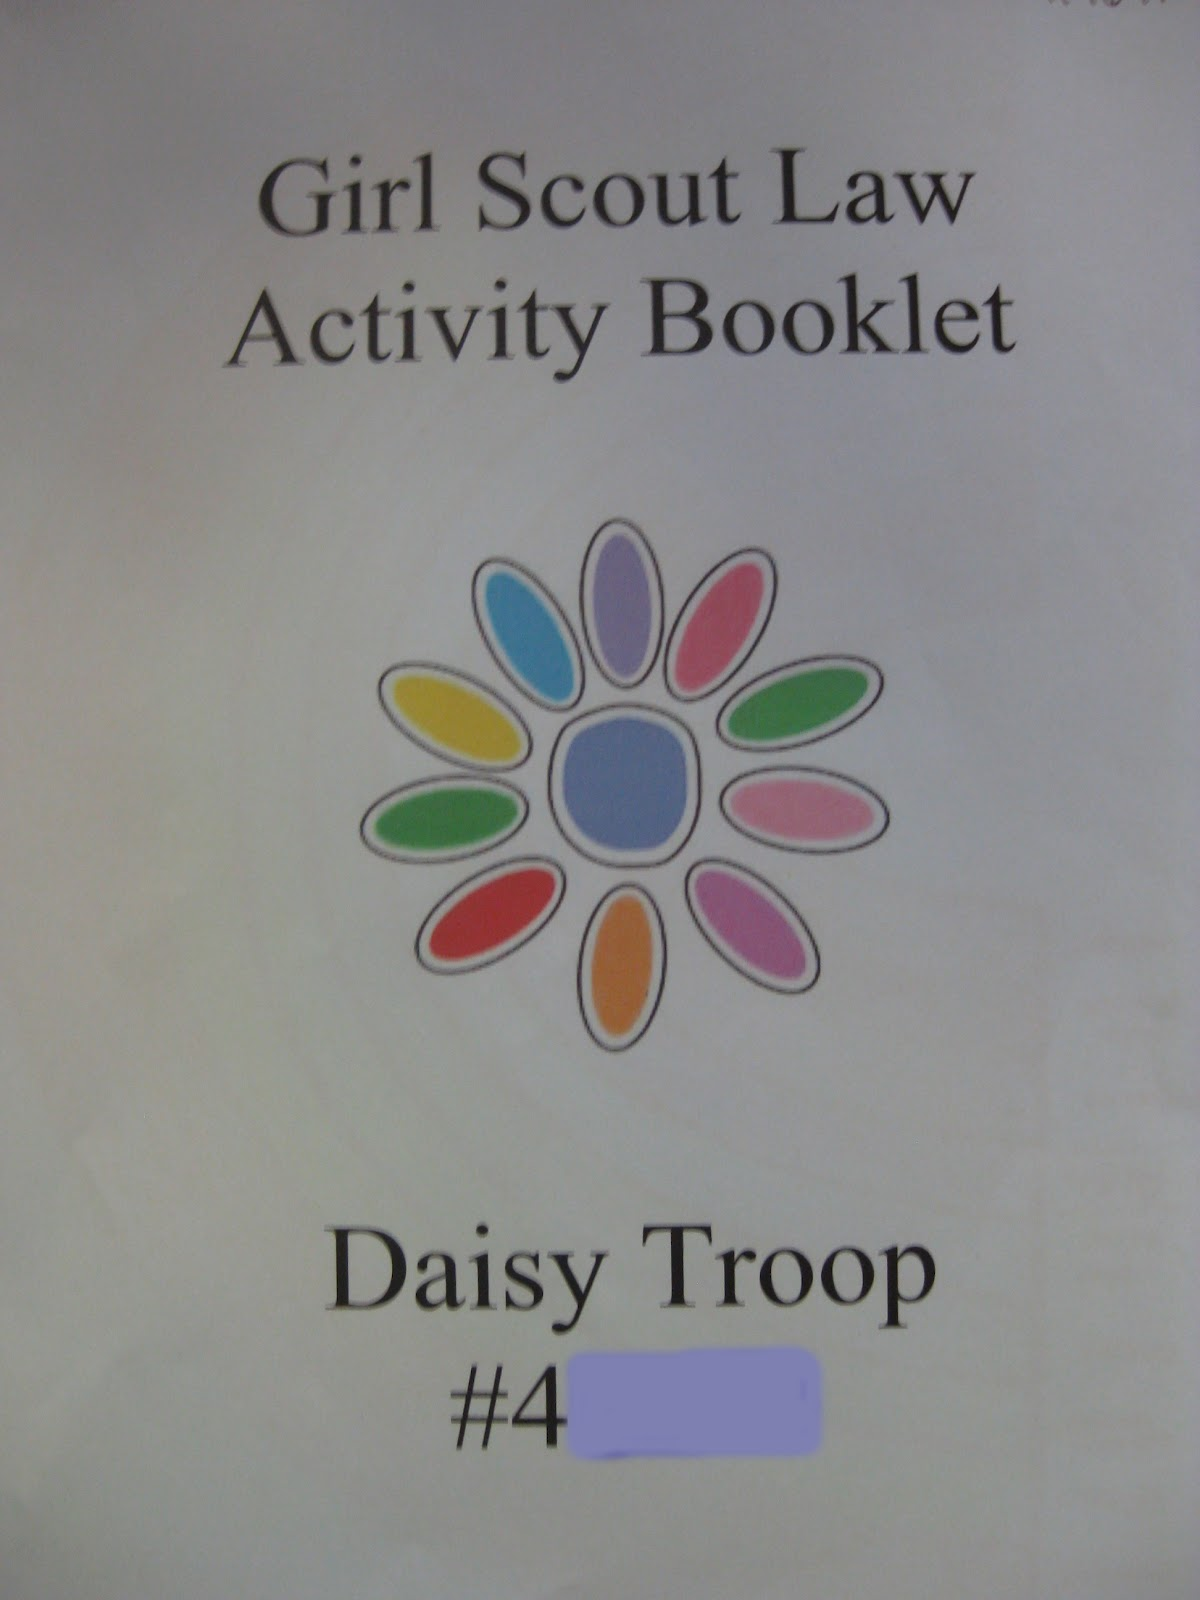 Daisy scout petal coloring pages - Page 1 Rainbow Coloring Sheet The Petal Colors Are Listed On The Bottom Left Of The Rainbow While The Corresponding Component Of The Law Is Listed On Each